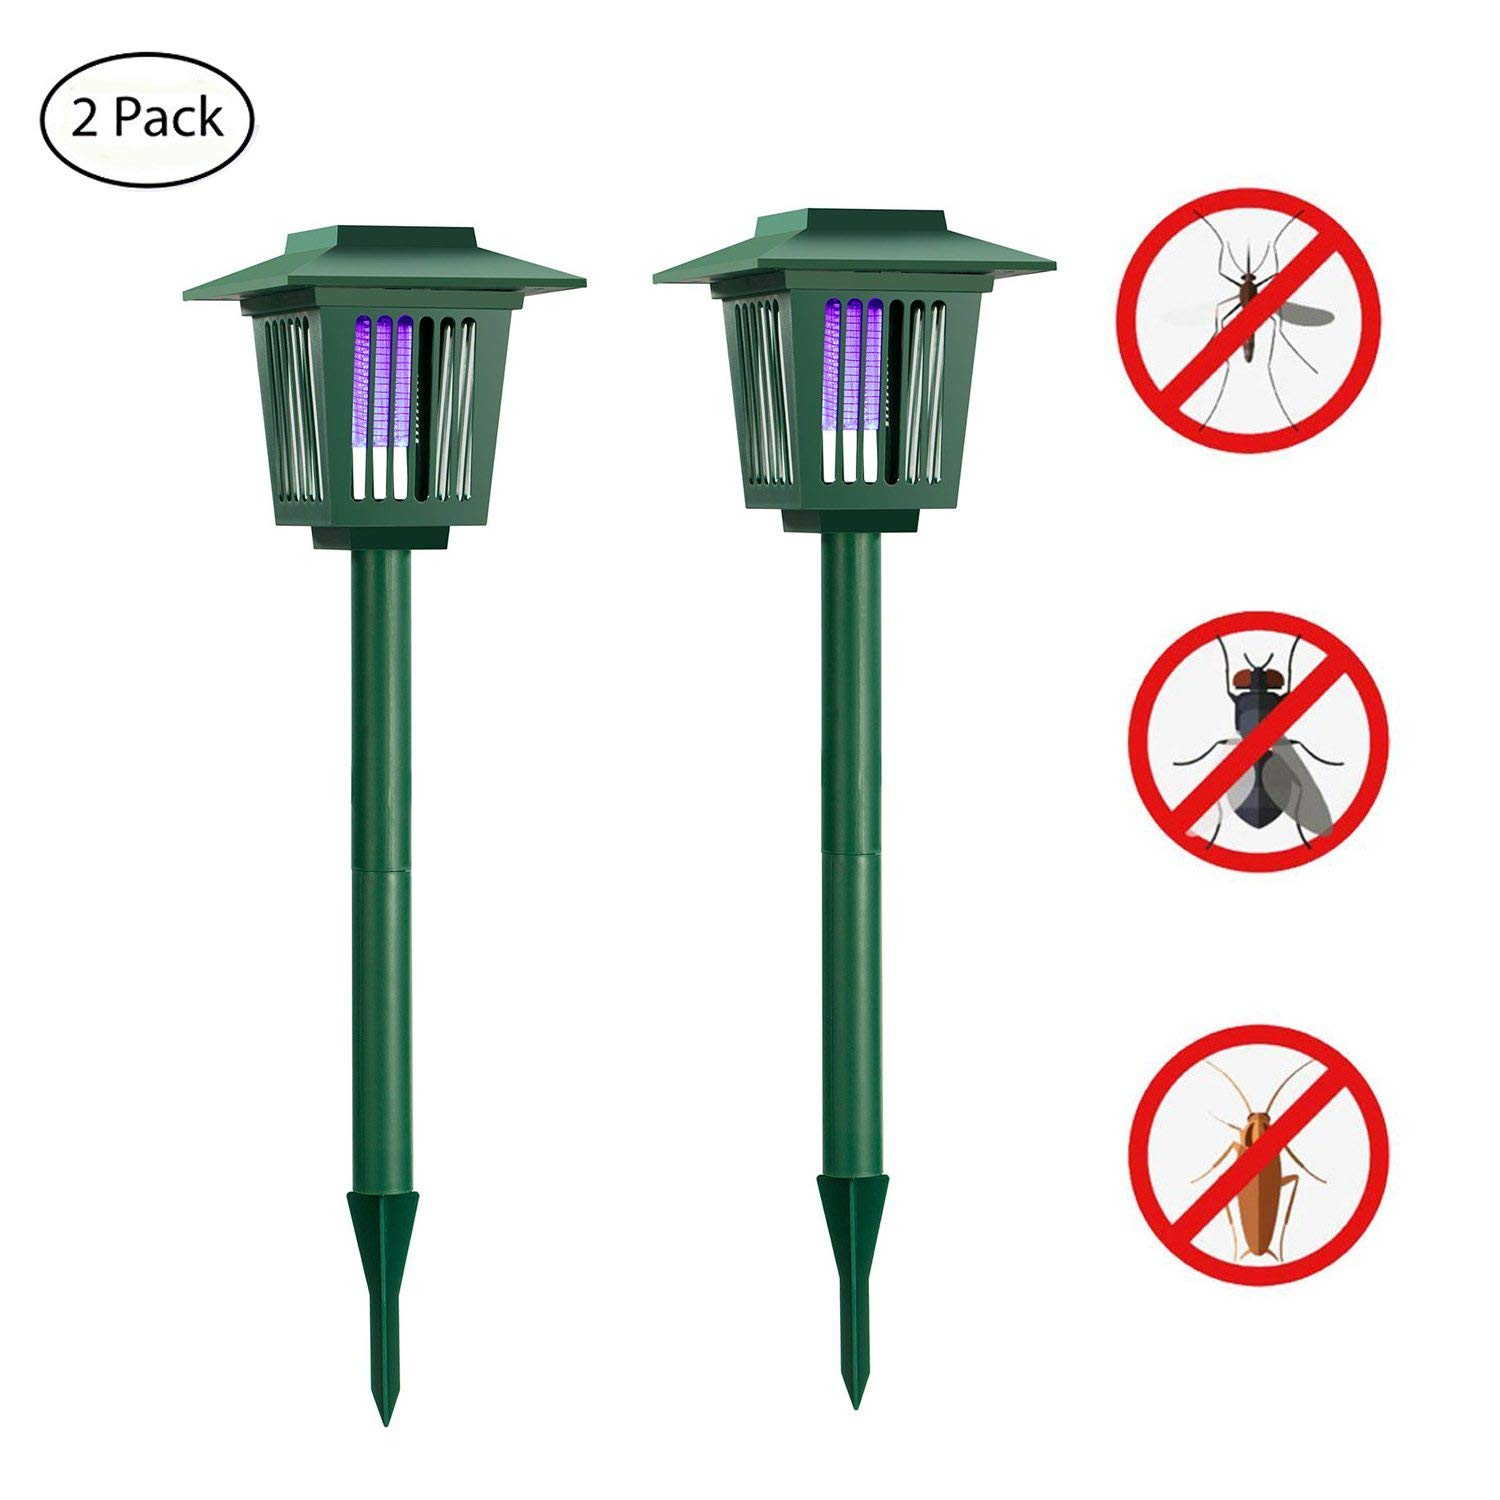 [2 pack] Solar Powered Bug Zapper Light, Solar Mosquito Killer Insect/Fly/Mosquitoes/Moths/Flies Killer Trap LED Garden Lawn Lamp Electronic Insects Killer Waterproof for Outdoor Use Pest Control HUYHU